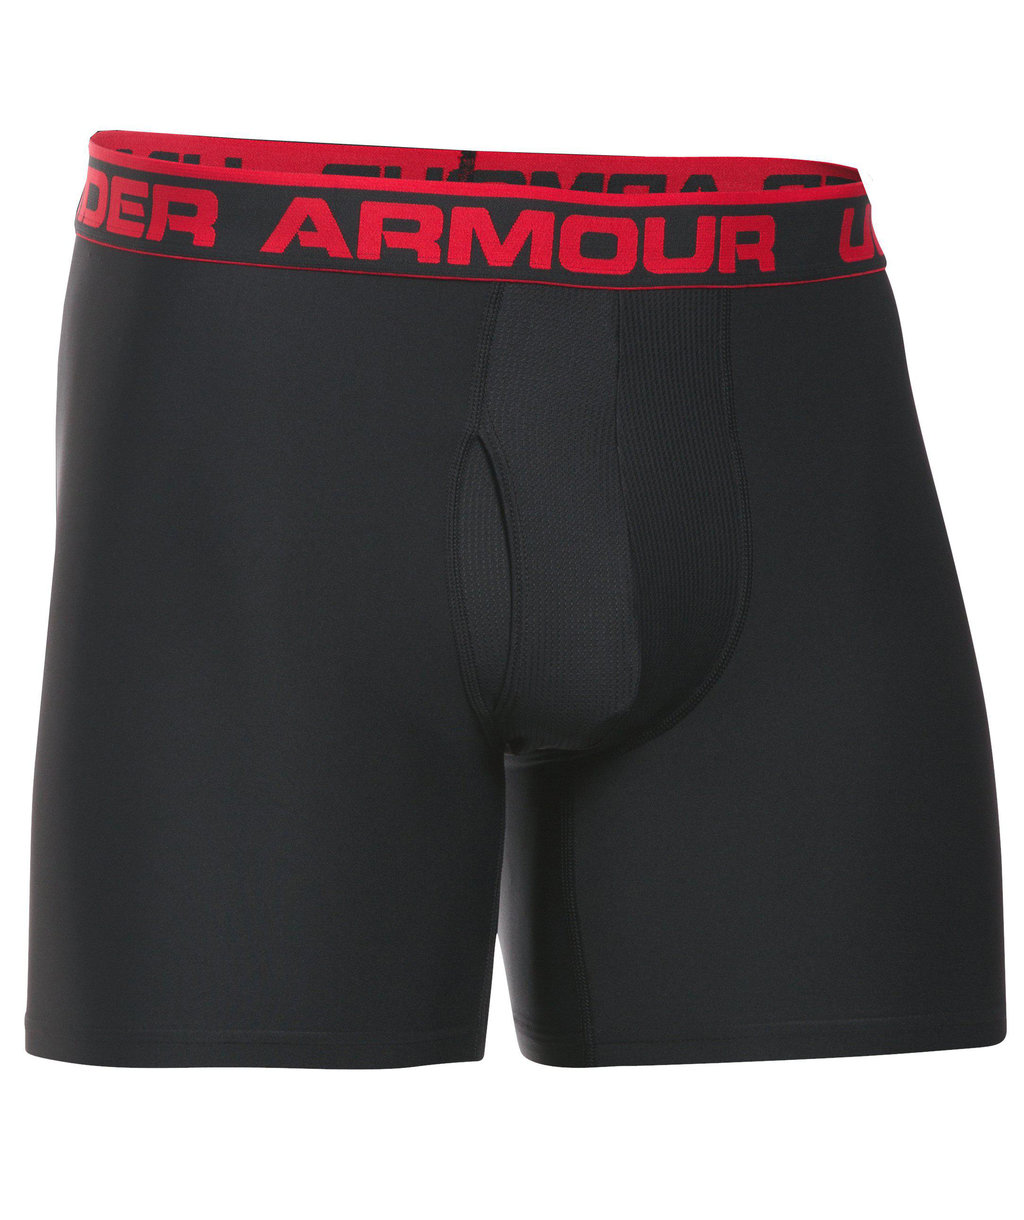 Under Armour boxershorts, Sort